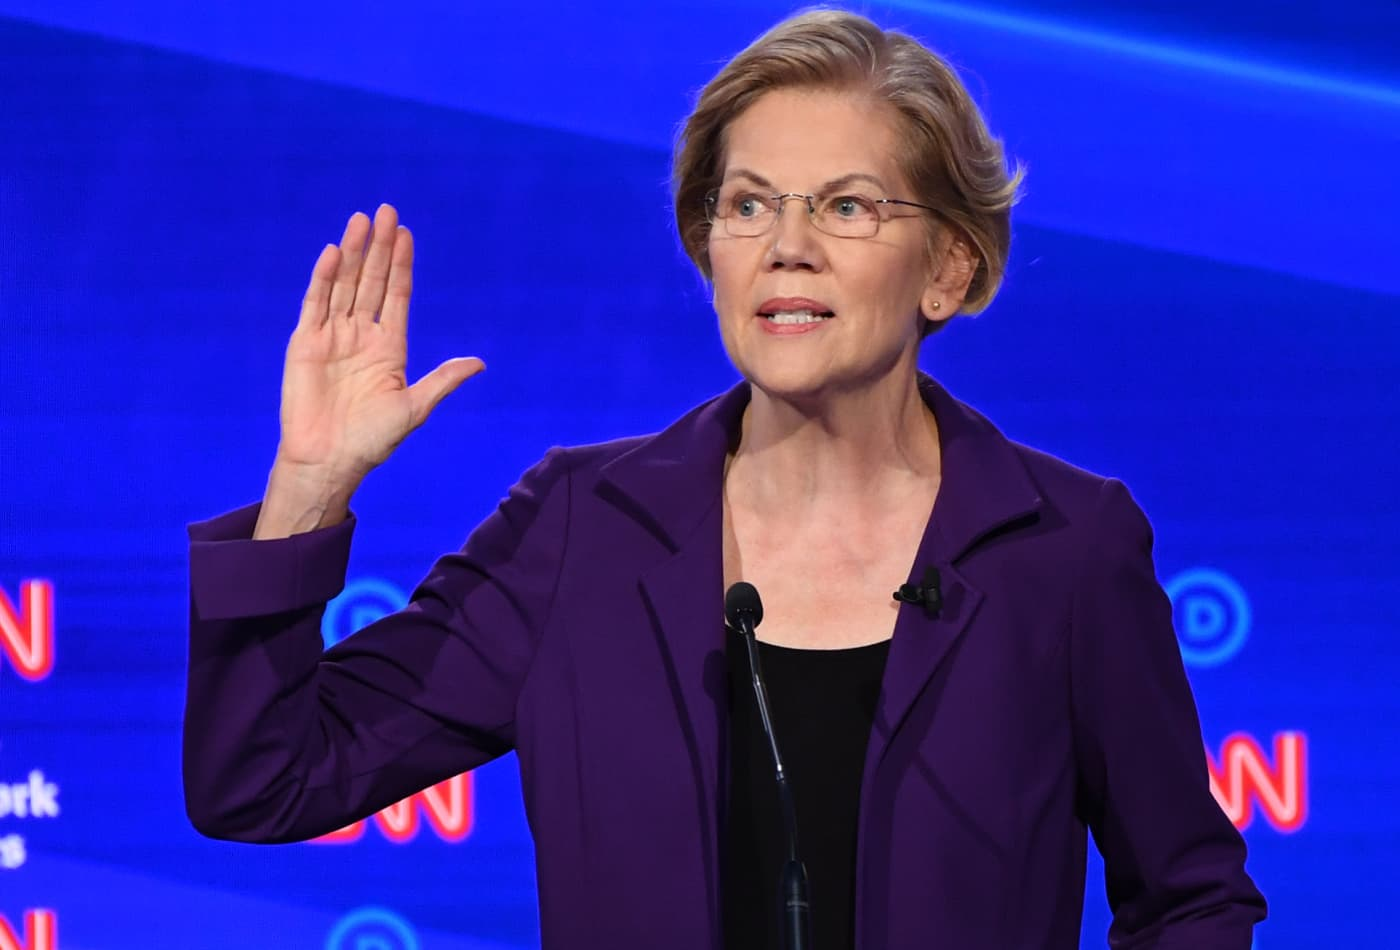 Elizabeth Warren proposes criminal penalties for spreading voting disinformation online